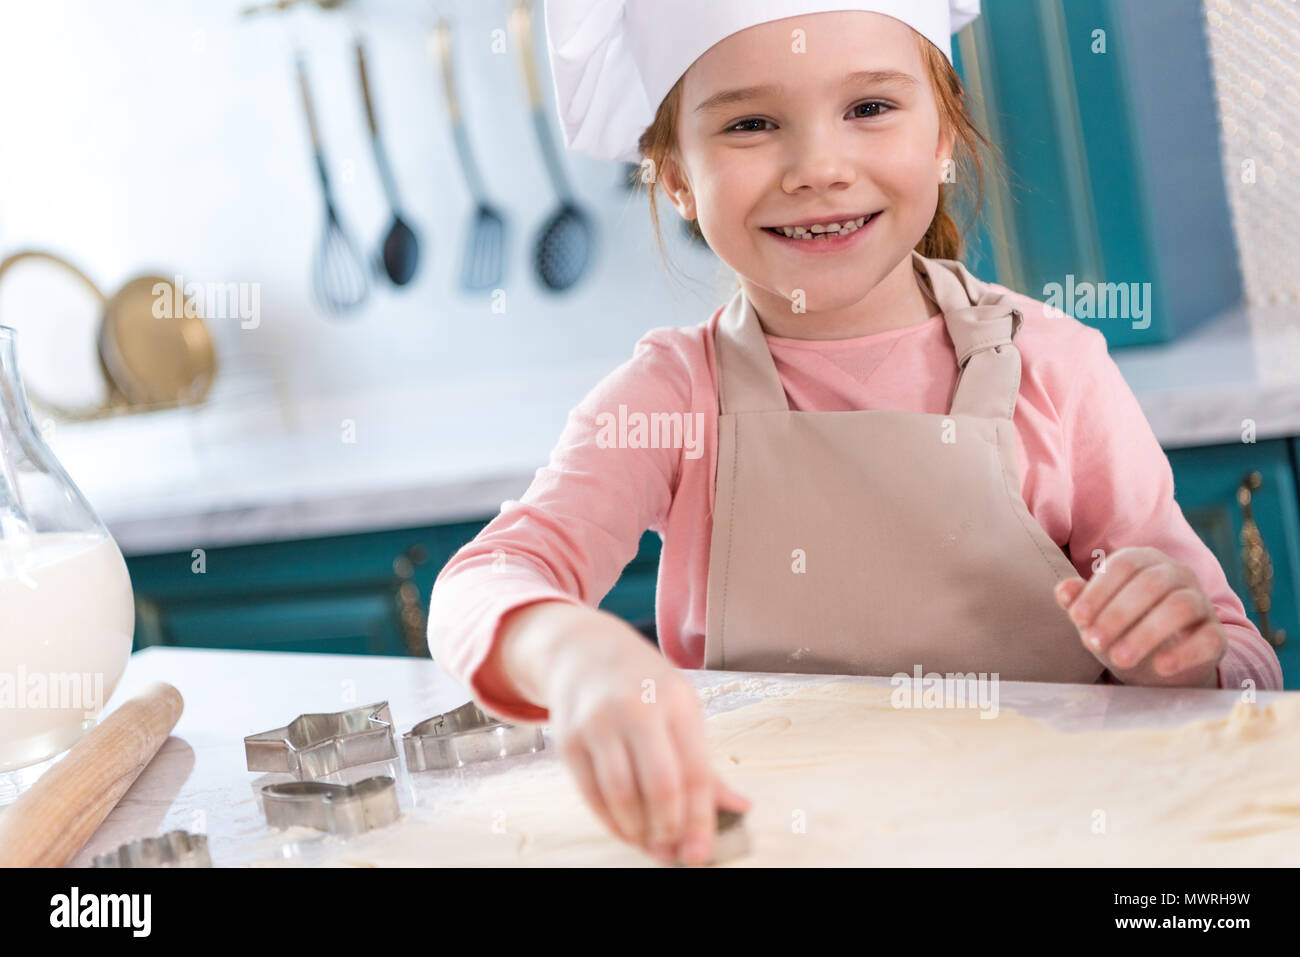 adorable child in chef hat and apron smiling at camera while preparing cookies - Stock Image